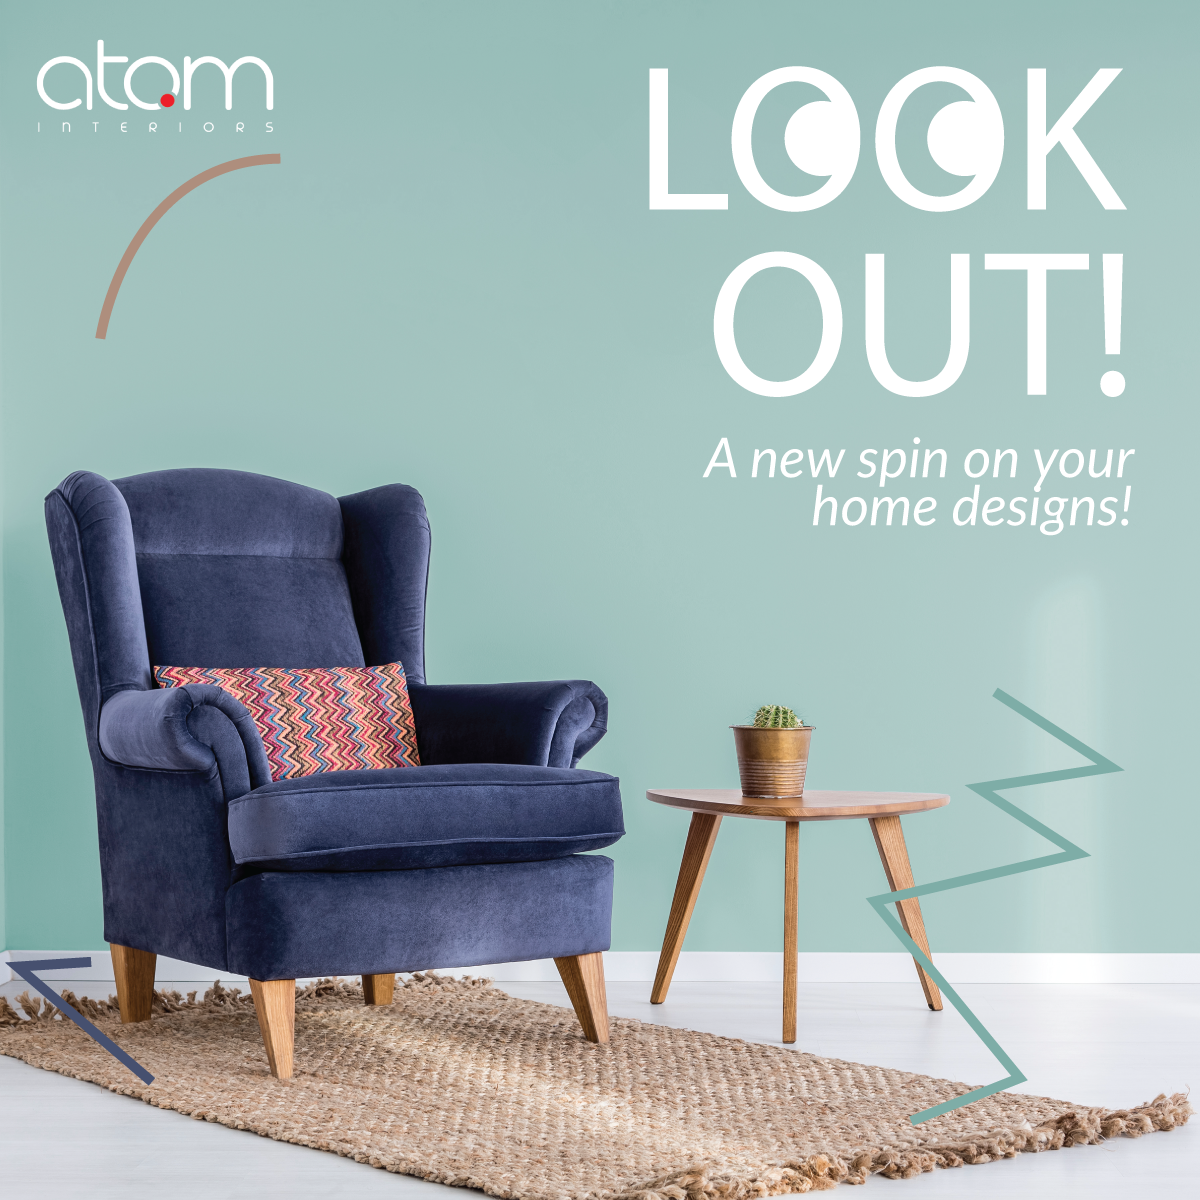 Make Your Home The Dream Book For A Free Consultation At Atom Studio On 94814 94815 Atominteriors Interiordesign Interiorstyling